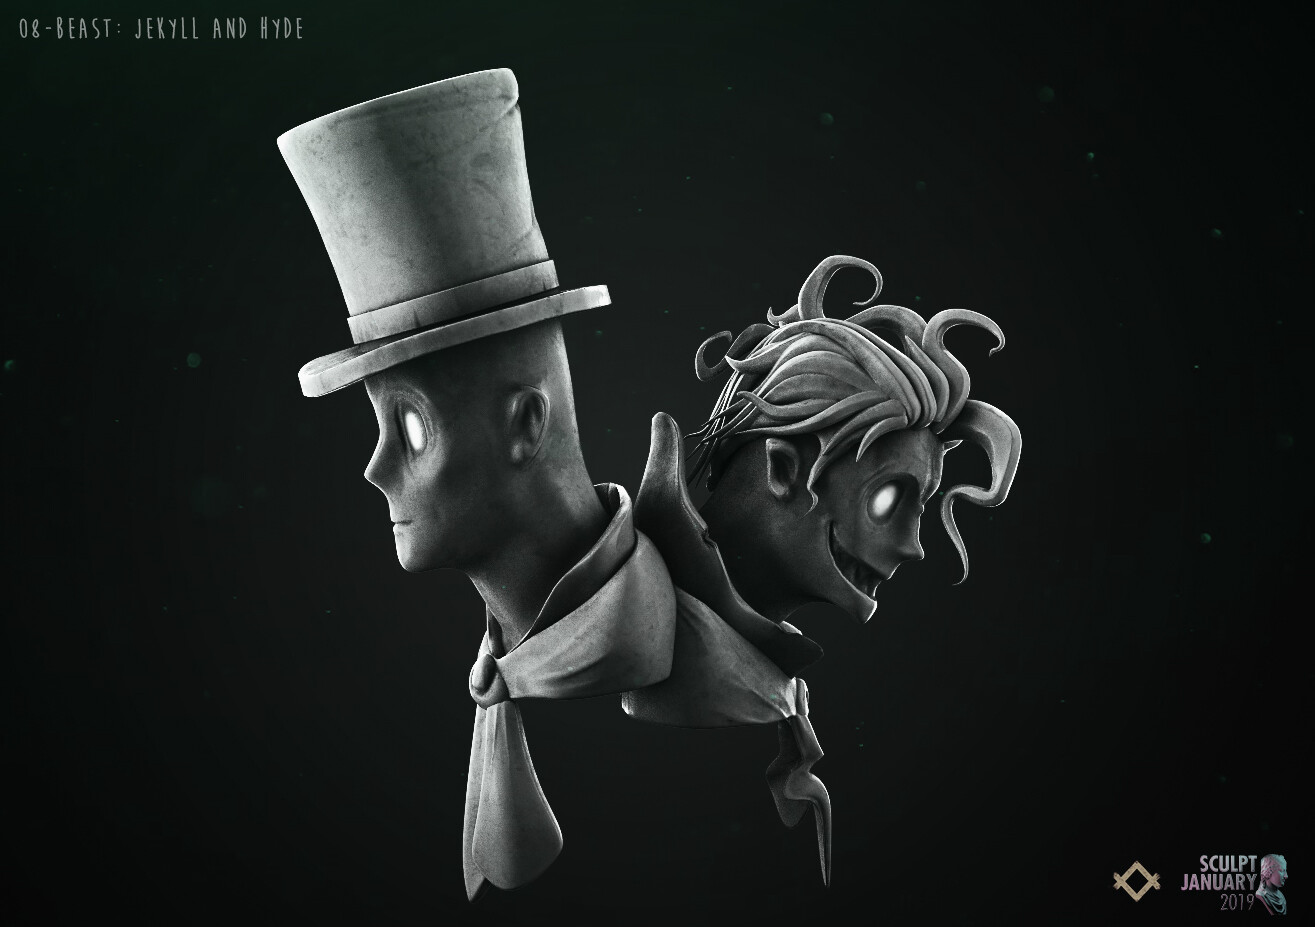 Based on: https://www.androidappbd.com/wp-content/uploads/2018/09/MazM-Jekyll-and-Hyde-Mod-Apk.jpg?fbclid=IwAR3lv3nMaDfxDGKdkmJg4InT9-VOpT-vY2g6YQuHMctvc4JQUZRvOc7aN_Y